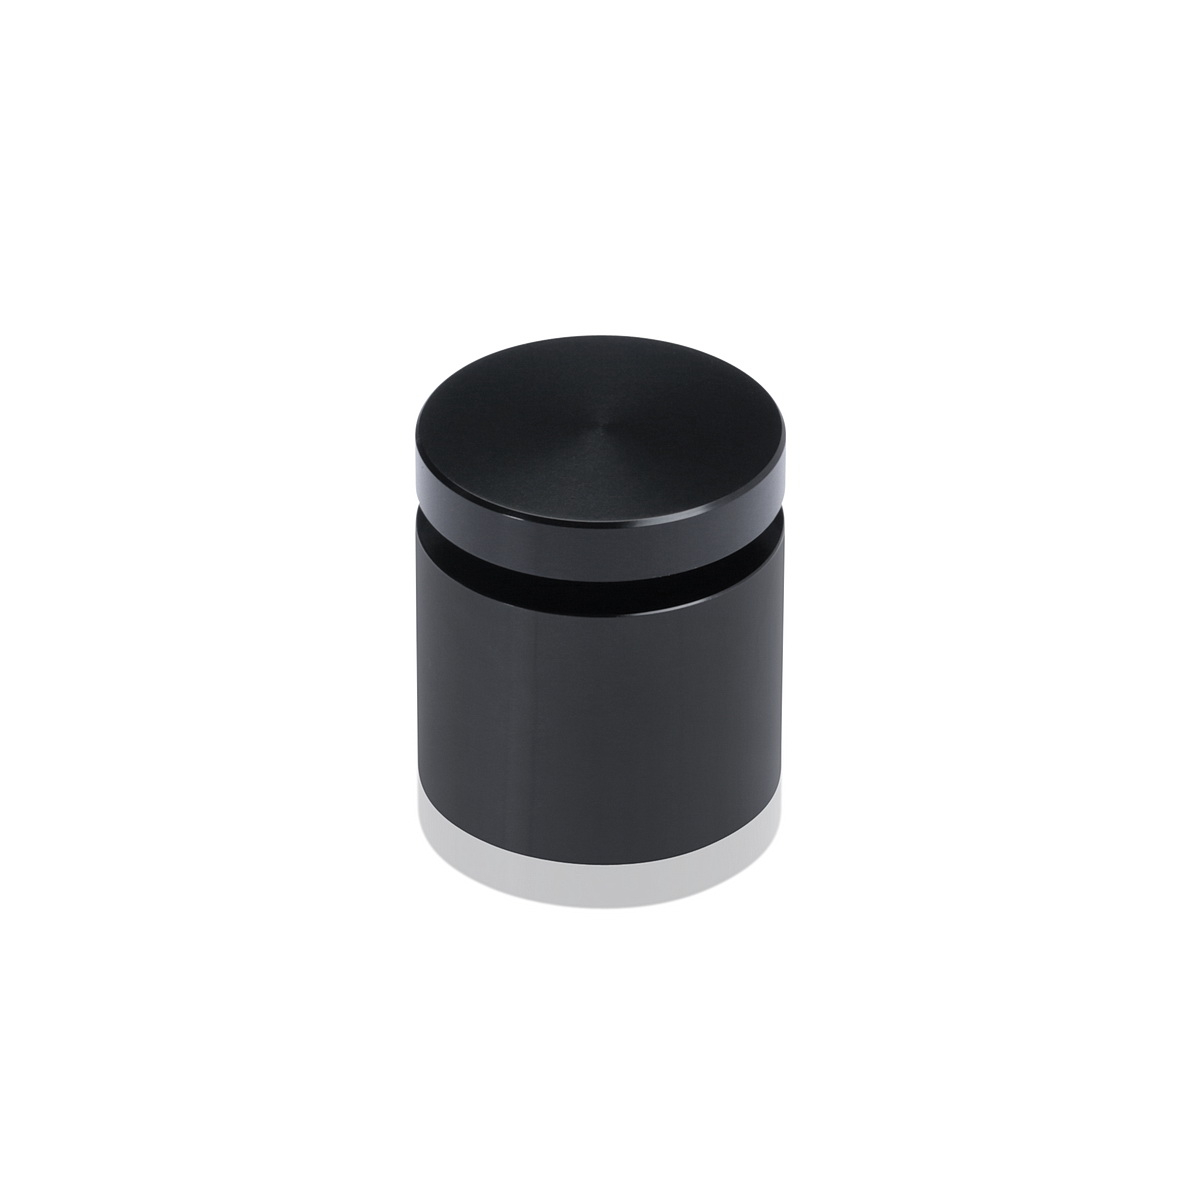 Affordable Aluminum Standoffs, Diameter: 1'', Standoff: 3/4'', Aluminum Black Finish